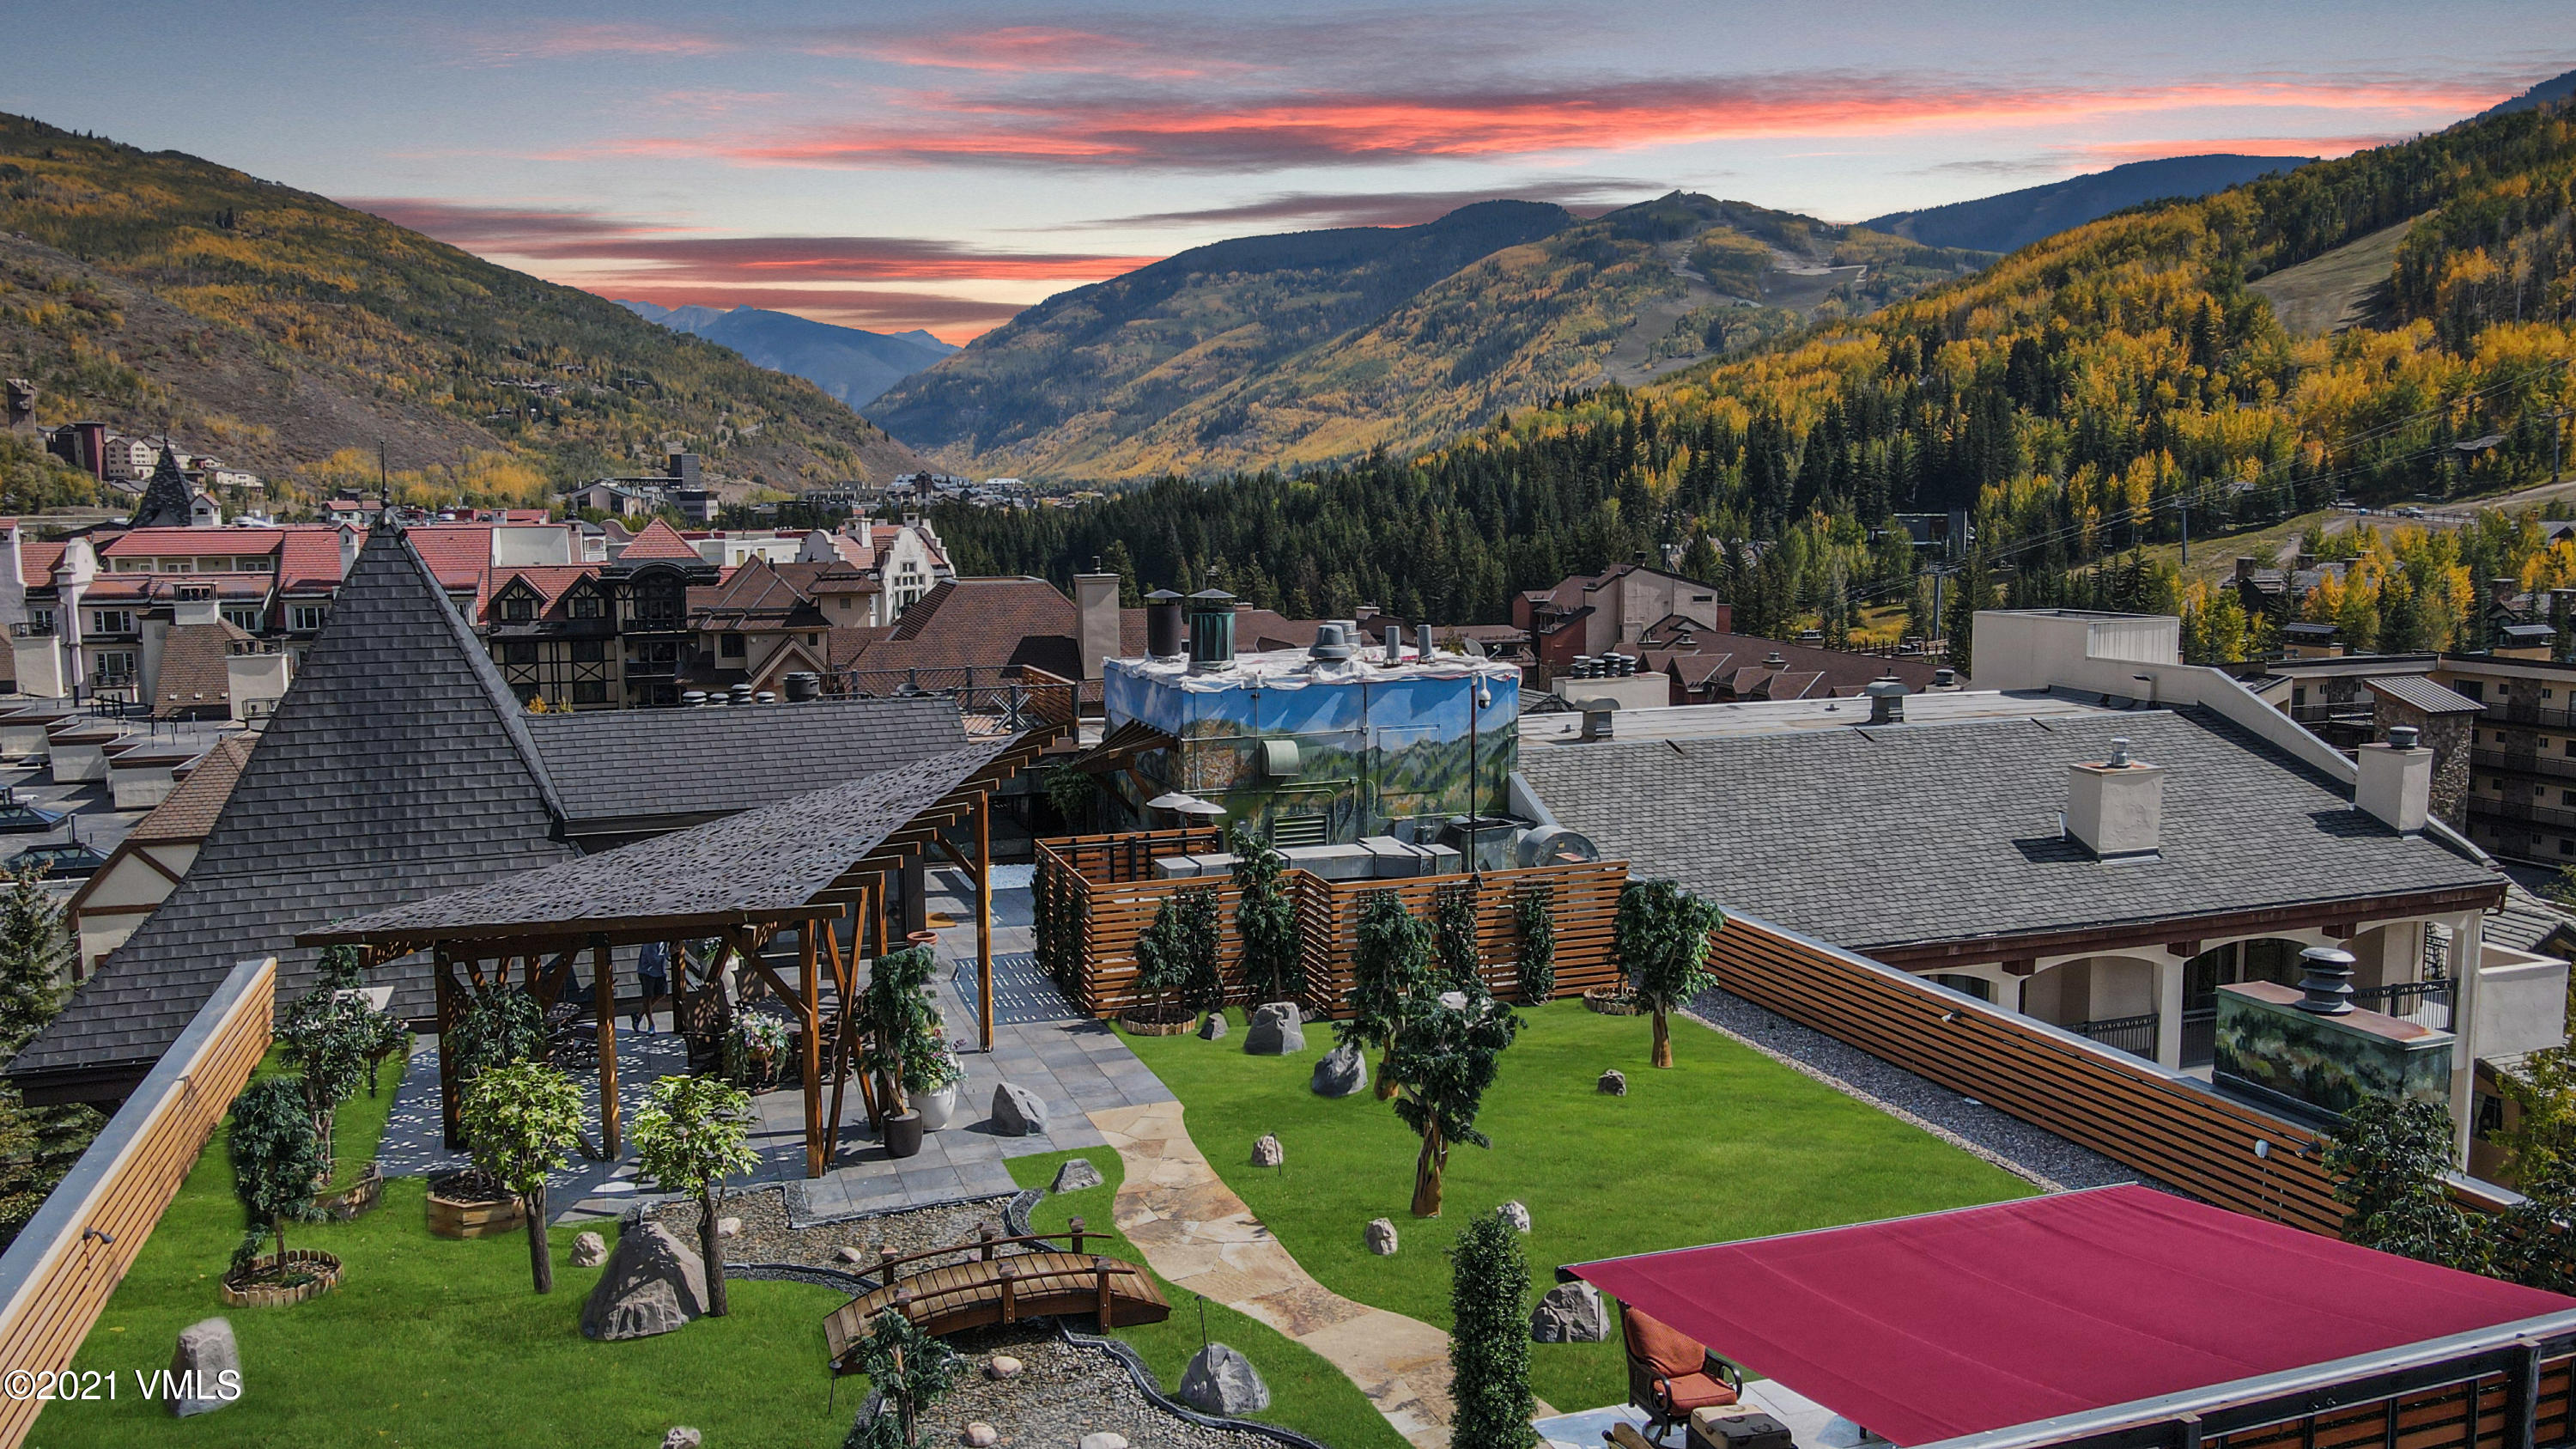 Without a doubt the most opulent penthouse in Vail, Colorado. This magical residence has been privately owned for over 40 years and is an absolute dream for the terrace aficionado. Flooded with light and an expansive open concept multi-level floorplan, this home set atop the Vail Marriott is the epitome of Colorado Luxury Living. Boasting 4 bedrooms, a separate family and home theater room, air conditioning, 2 large private balconies, 2 fireplaces, and 2 coveted parking spaces one can enjoy the full services of this luxury resort. In a town known for special and exceptional properties this is truly a rare offering! The unprecedented 6,000 square foot private rooftop terrace, featuring a private hot tub, a putting green, meandering water feature, fire pit and alfresco dining boasts unobstructed panoramic views of Vail mountain while nestled in your own secluded oasis. This rare penthouse also features access to all of the lavish amenities of the Marriott Luxury Resort in the heart of timeless Vail. Unsurpassed luxury living.